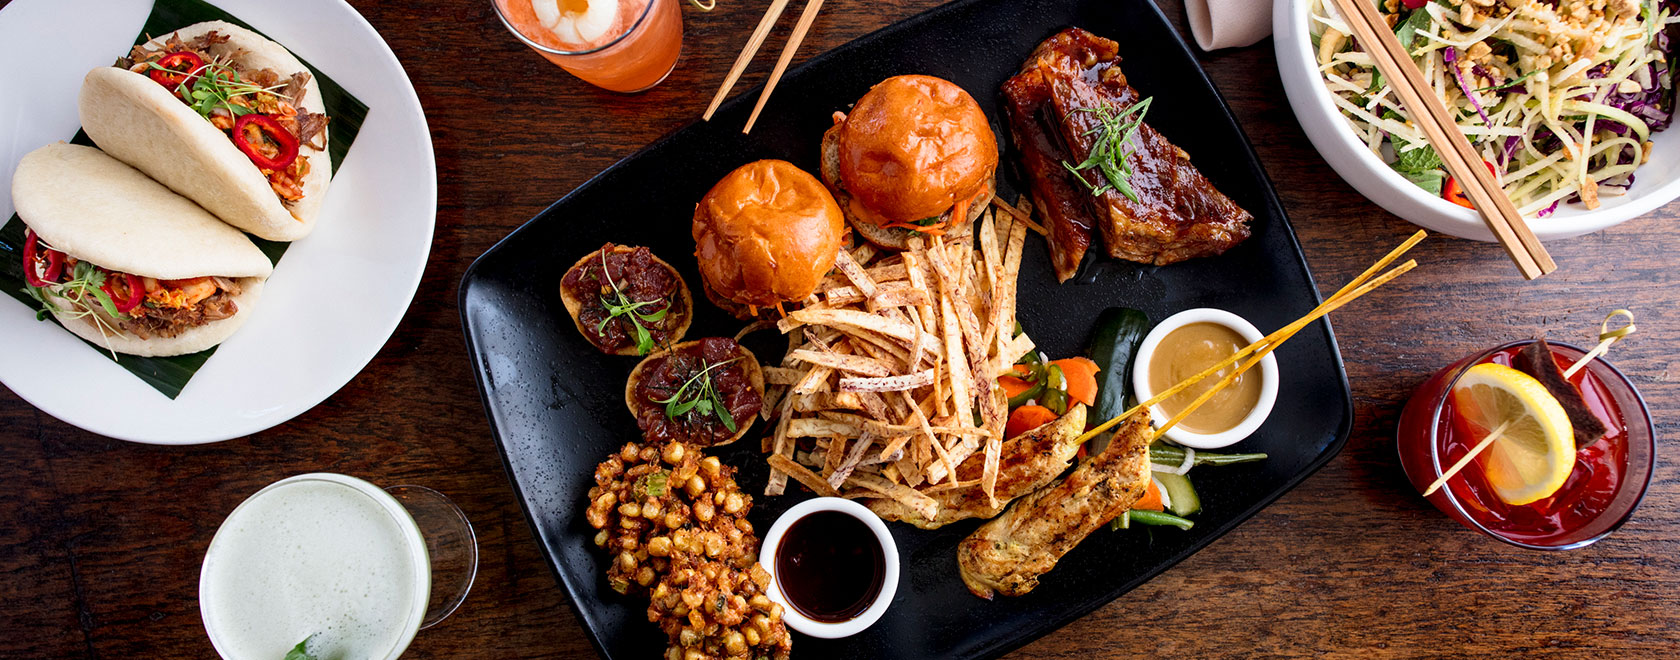 an aerial view of a spread of entrees from E & O Kitchen and drinks set out on a table